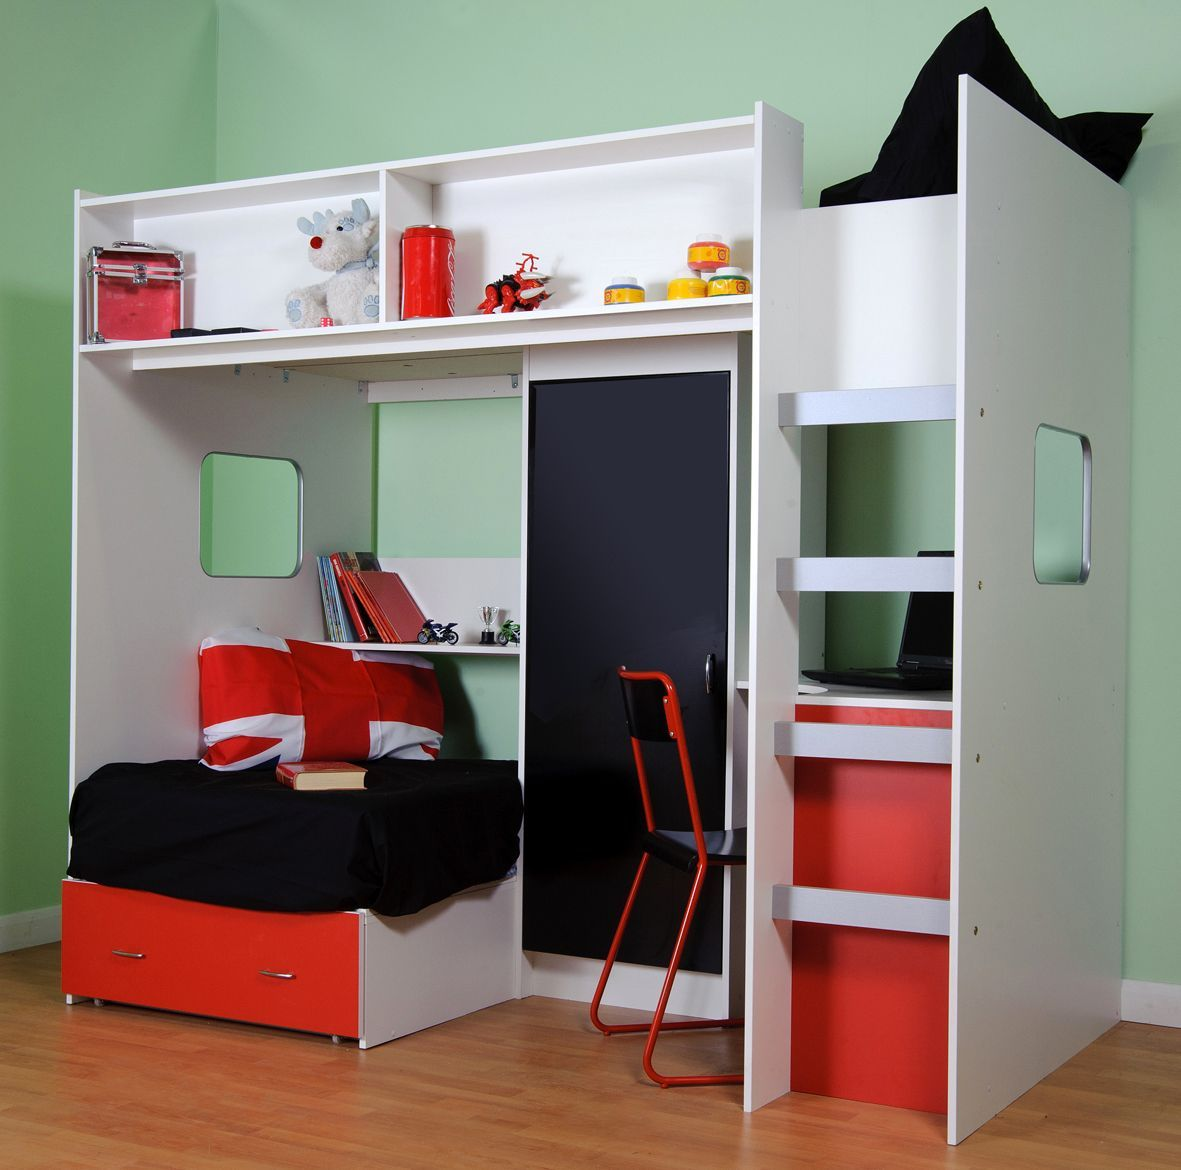 Medium image of childrens and teenagers high sleeper bed with futon style bed wardrobe and desk